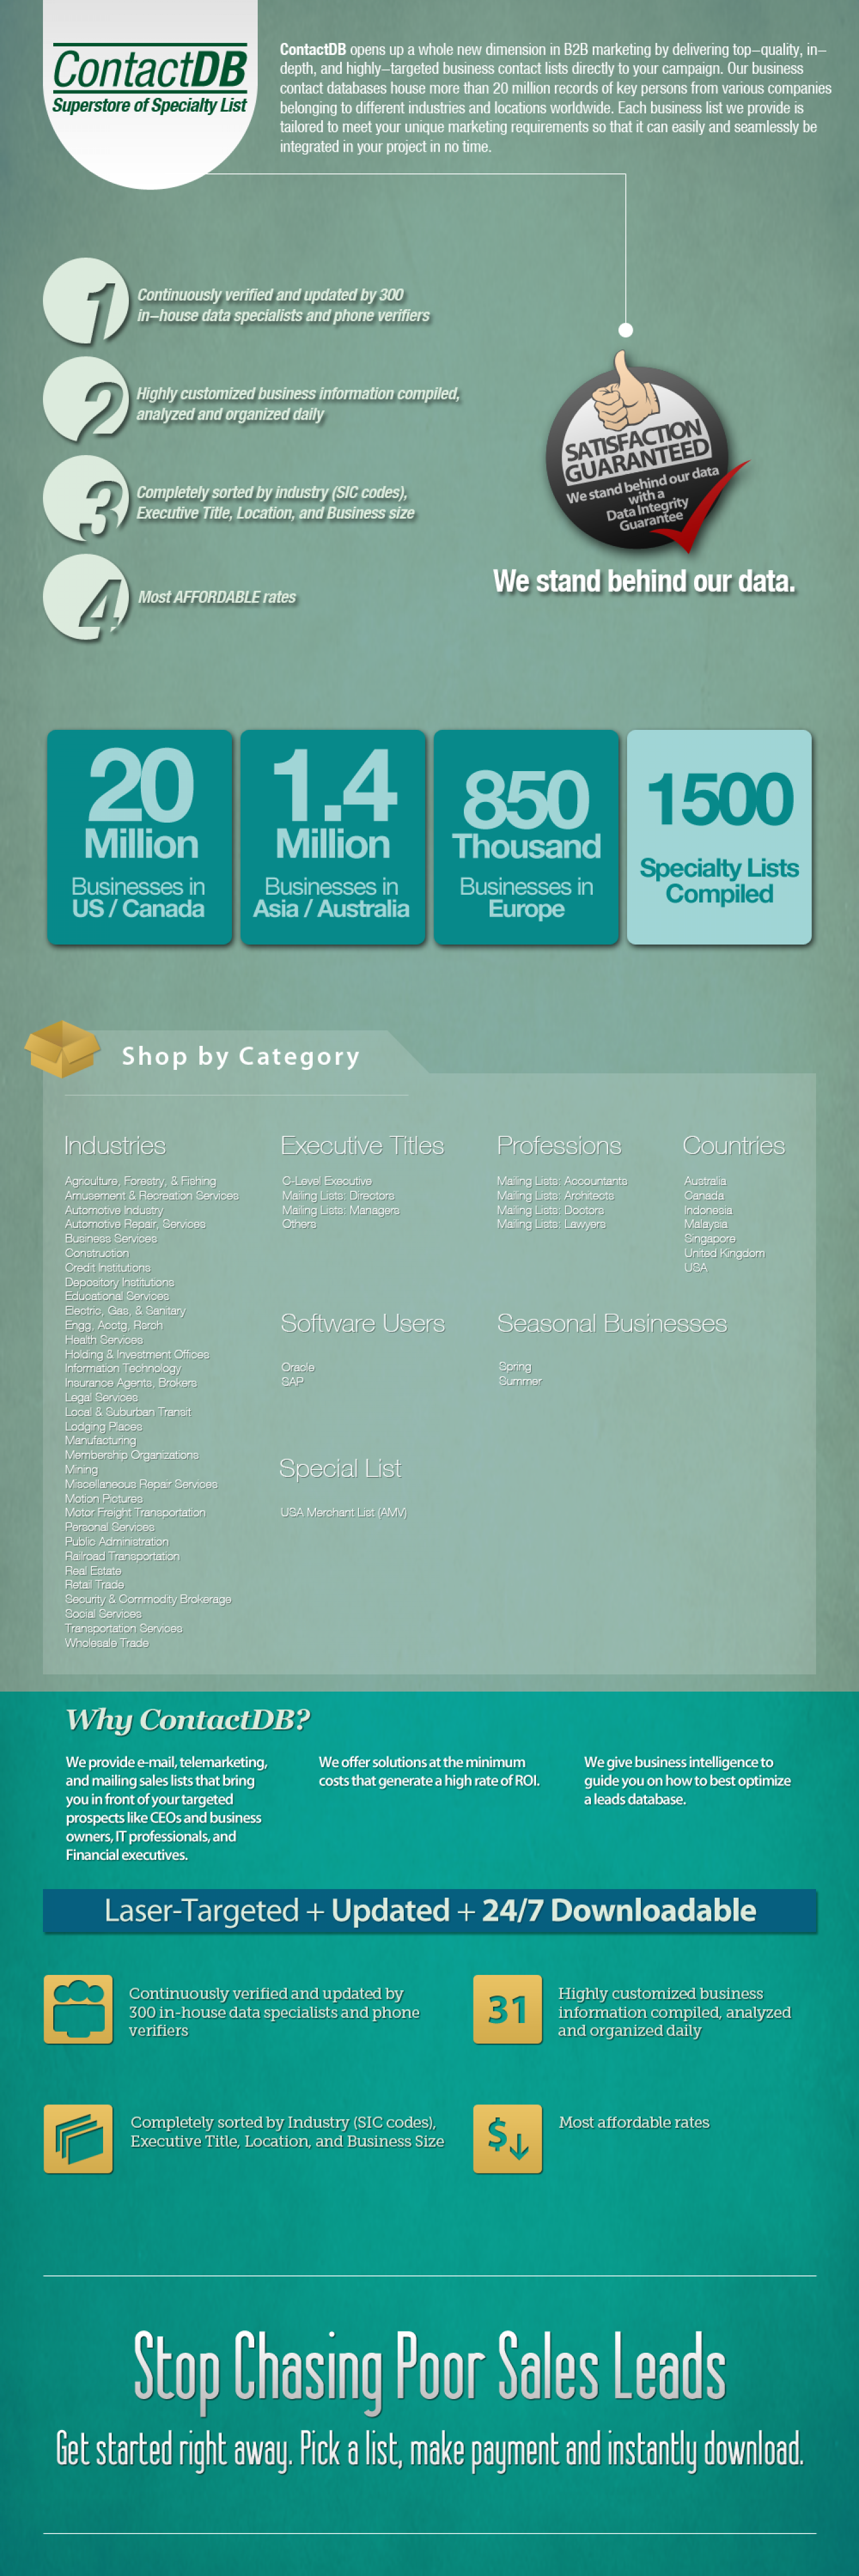 Getting to Know ContactDB Infographic